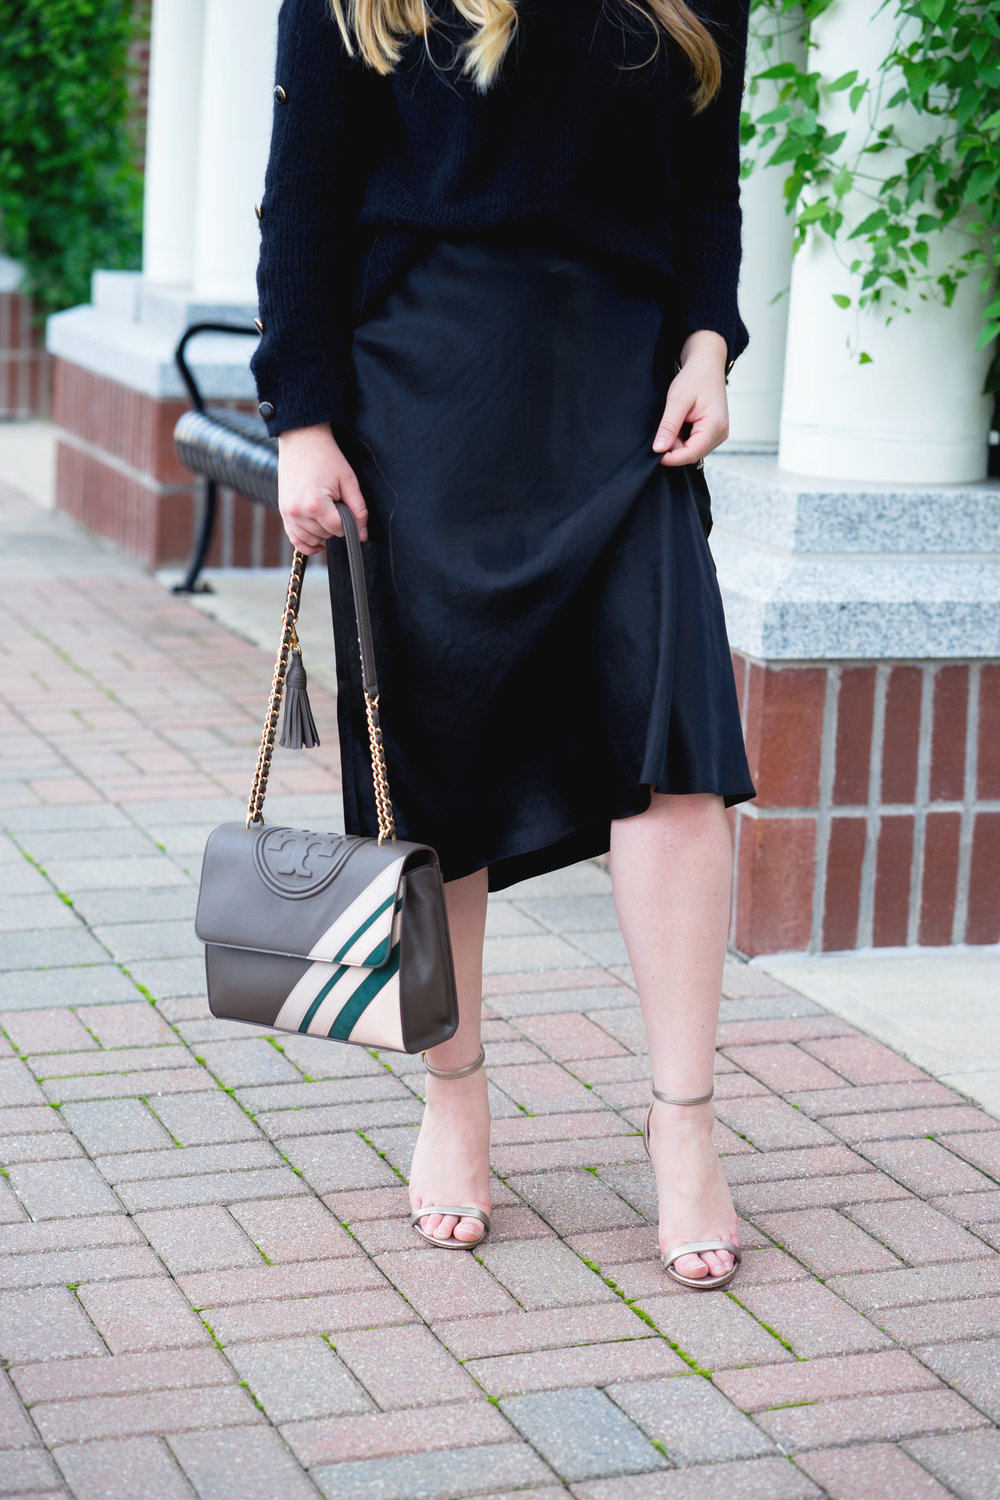 Maggie a la Mode - Vince Satin Skirt, Sezane Marcel Jumper, Tory Burch Fleming Stripe Convertible Shoulder Bag, Rachel Zoe GolD Strappy Heels, Warby Parker Aldridge Sunglasses